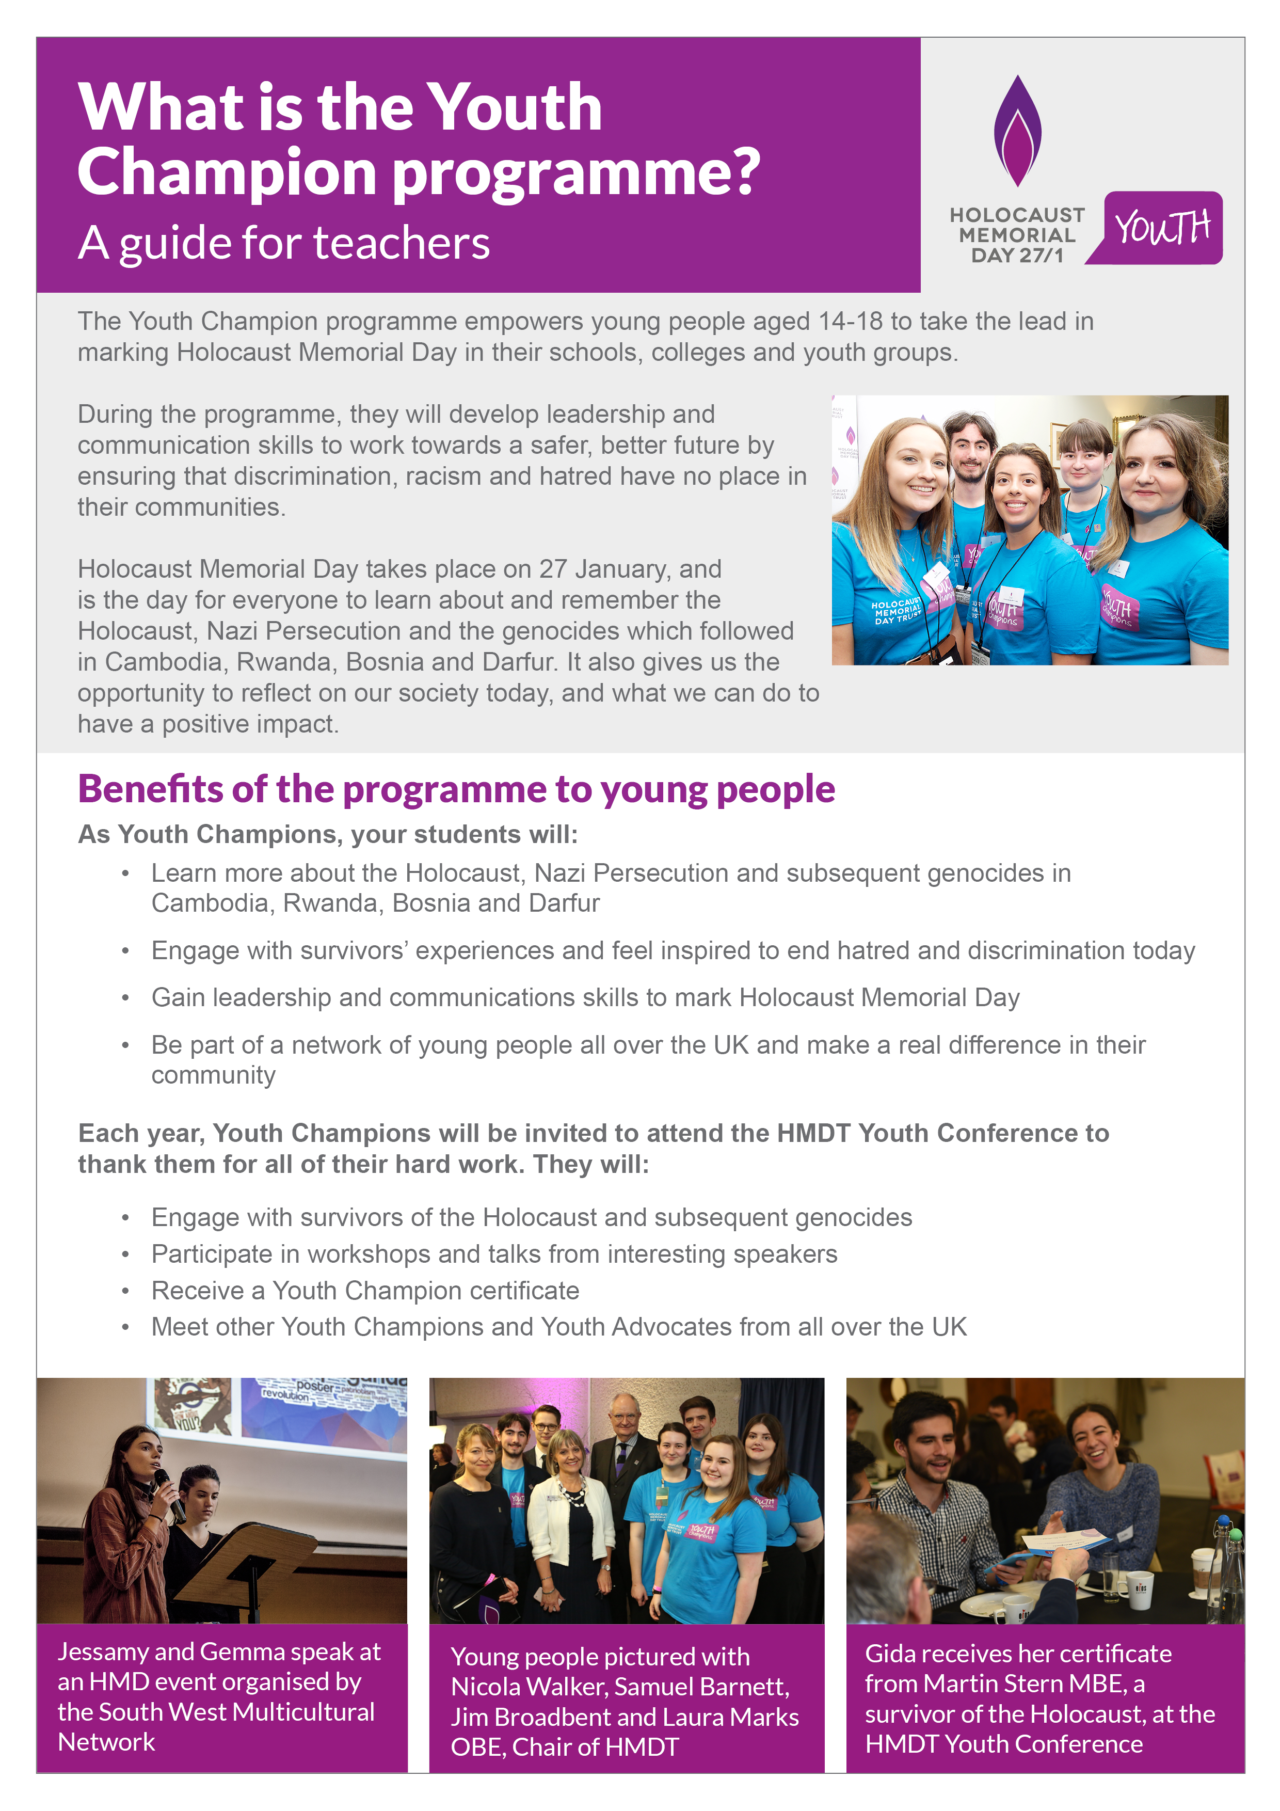 Teacher guide - Youth Champion programme